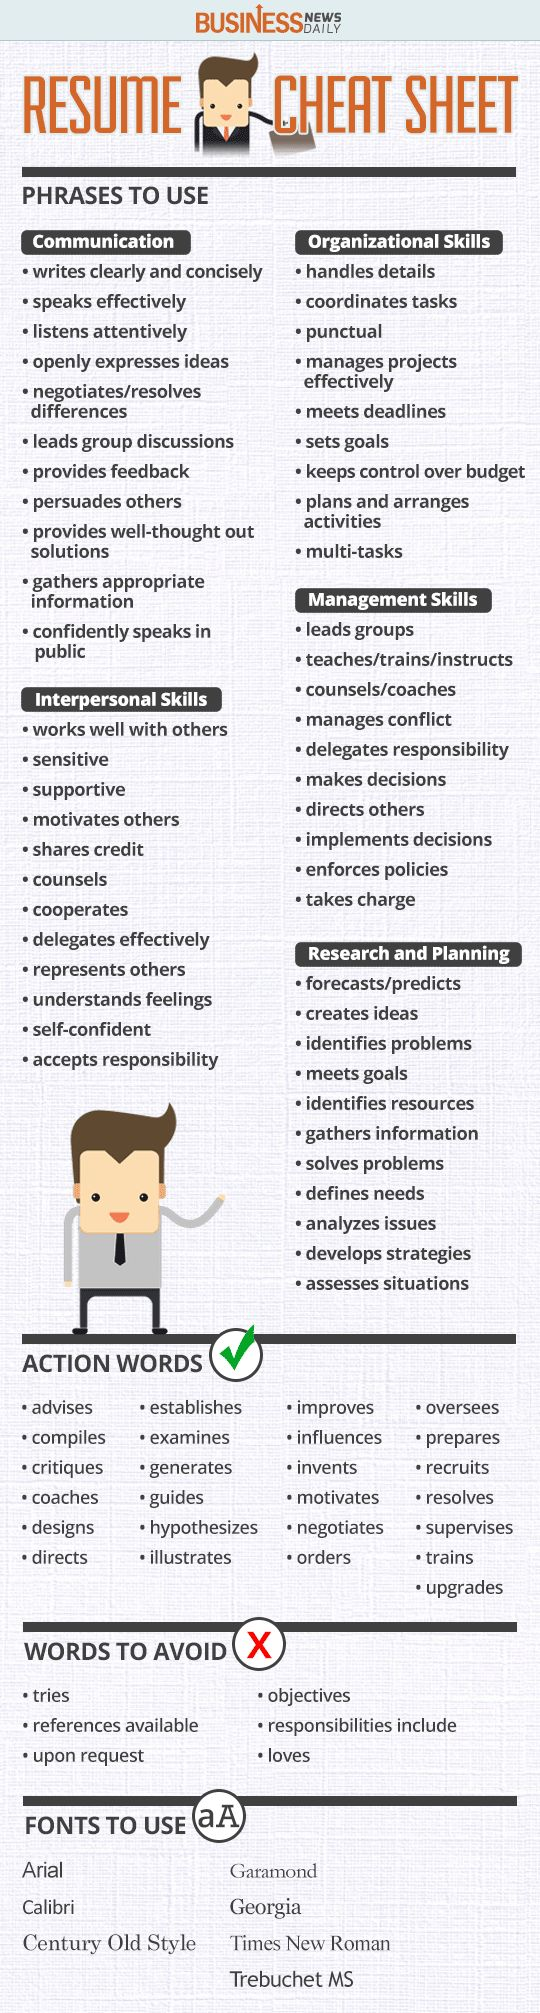 best ideas about resume writing resume resume crystaldiercks the only resume cheat sheet you will ever need is putting your resume together making you question if you should apply for a job